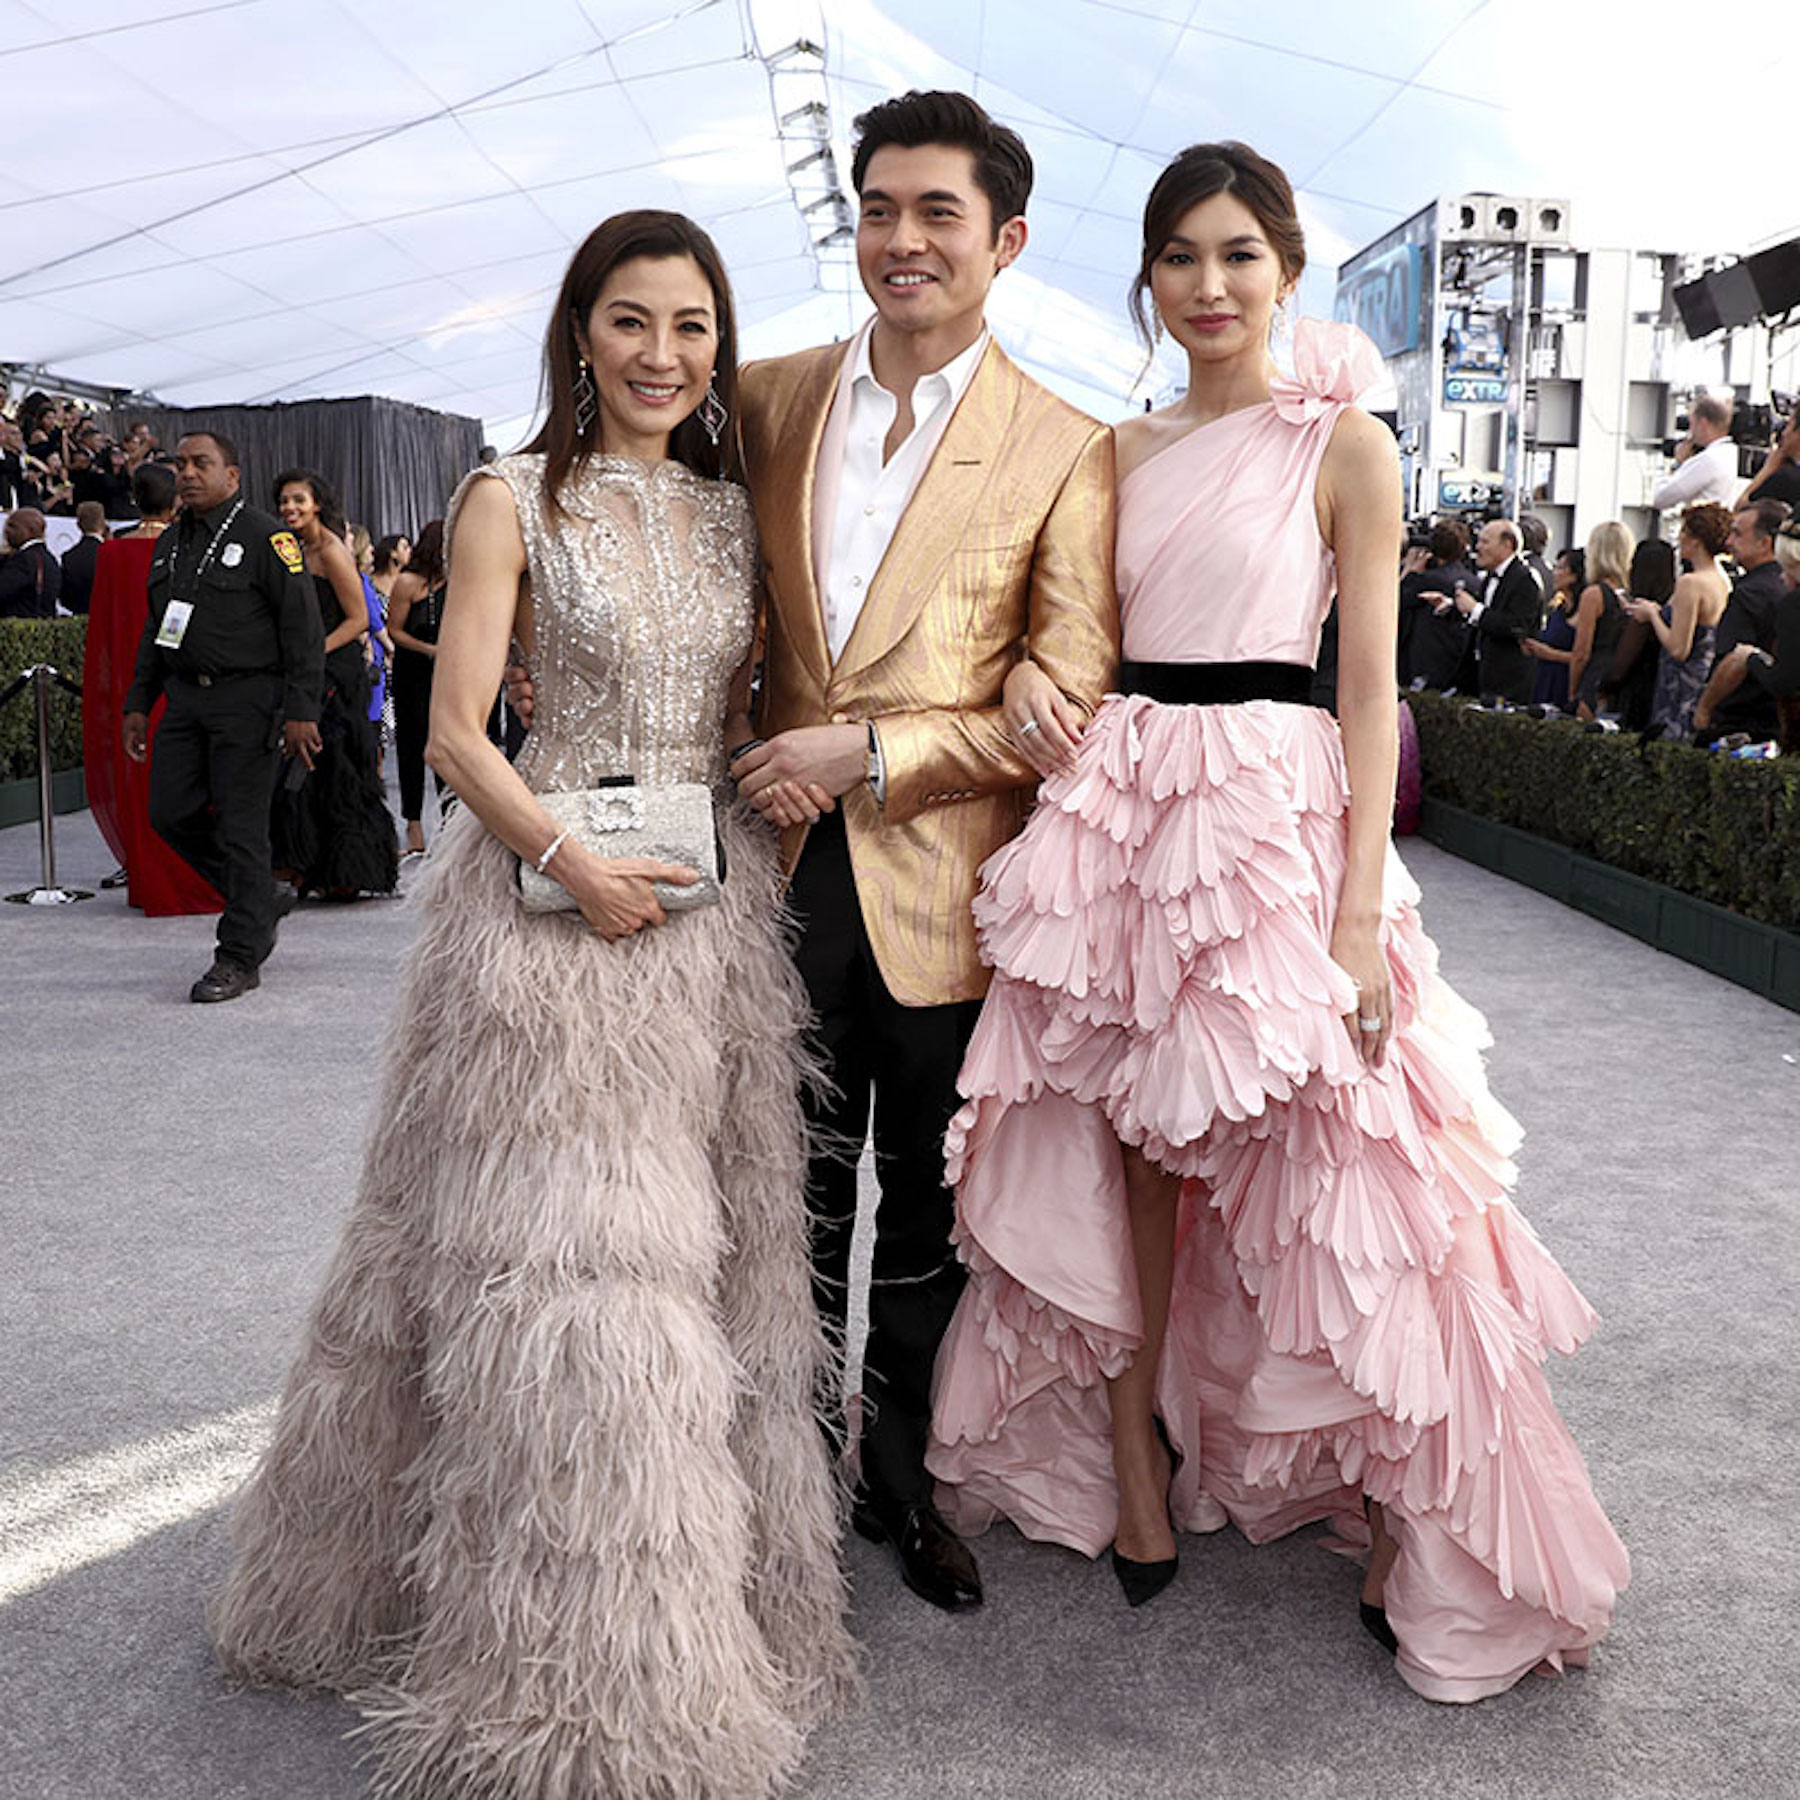 <div class='meta'><div class='origin-logo' data-origin='AP'></div><span class='caption-text' data-credit='Matt Sayles/Invision/AP'>Michelle Yeoh, from left, Henry Golding and Gemma Chan arrive at the 25th annual Screen Actors Guild Awards at the Shrine Auditorium & Expo Hall on Sunday, Jan. 27, 2019.</span></div>